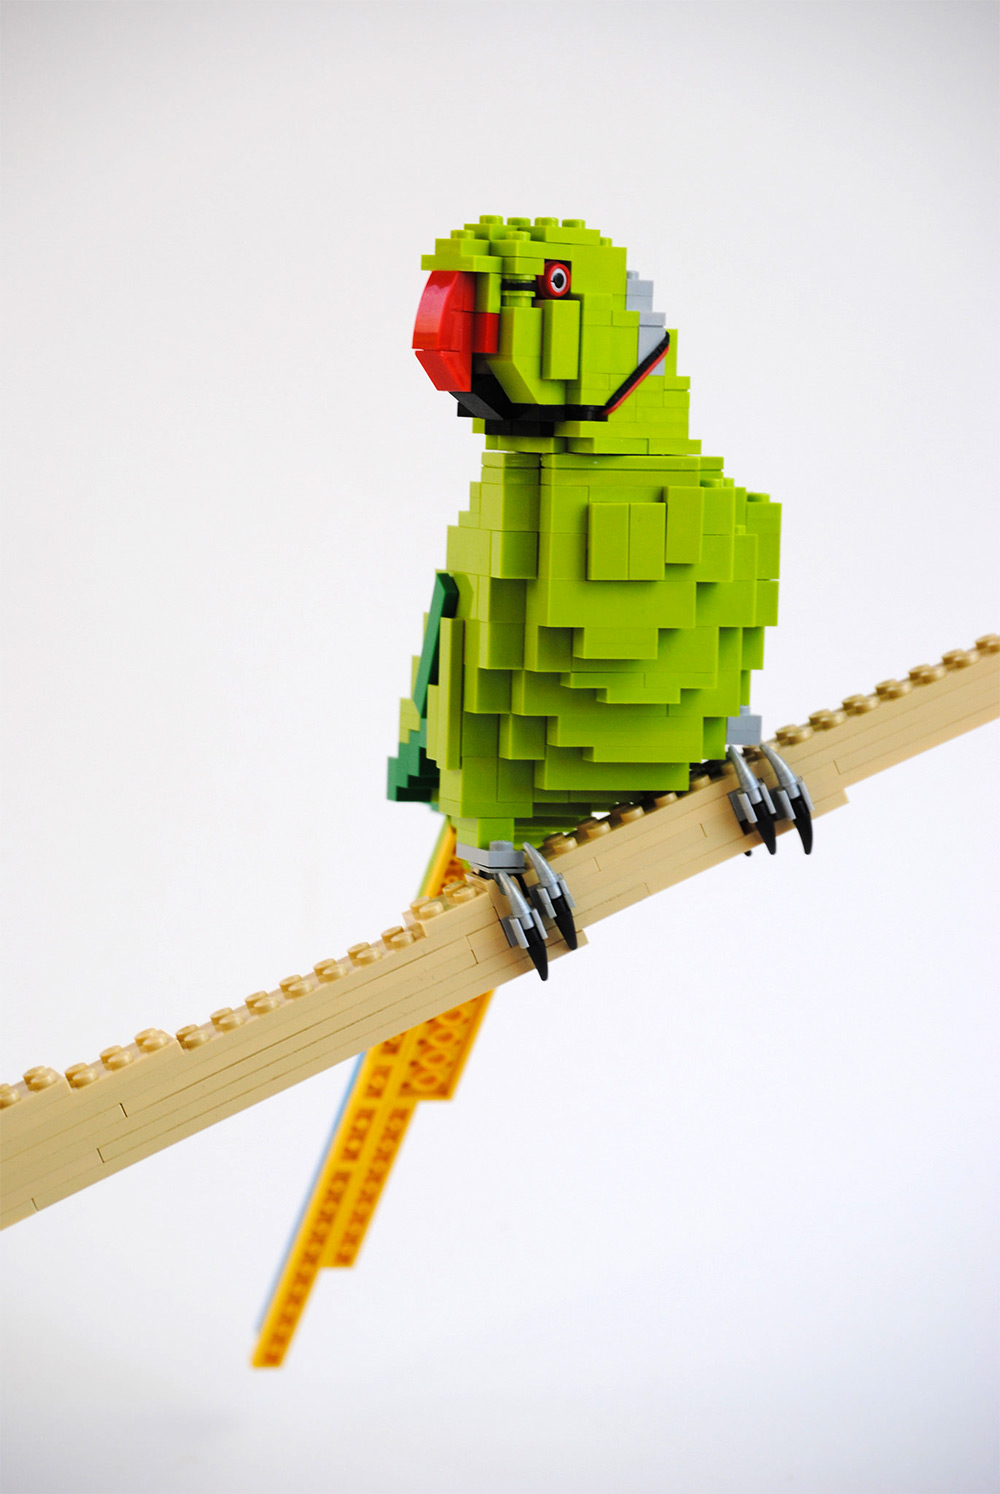 Precisely Crafted LEGO Animals by Felix Jaensch